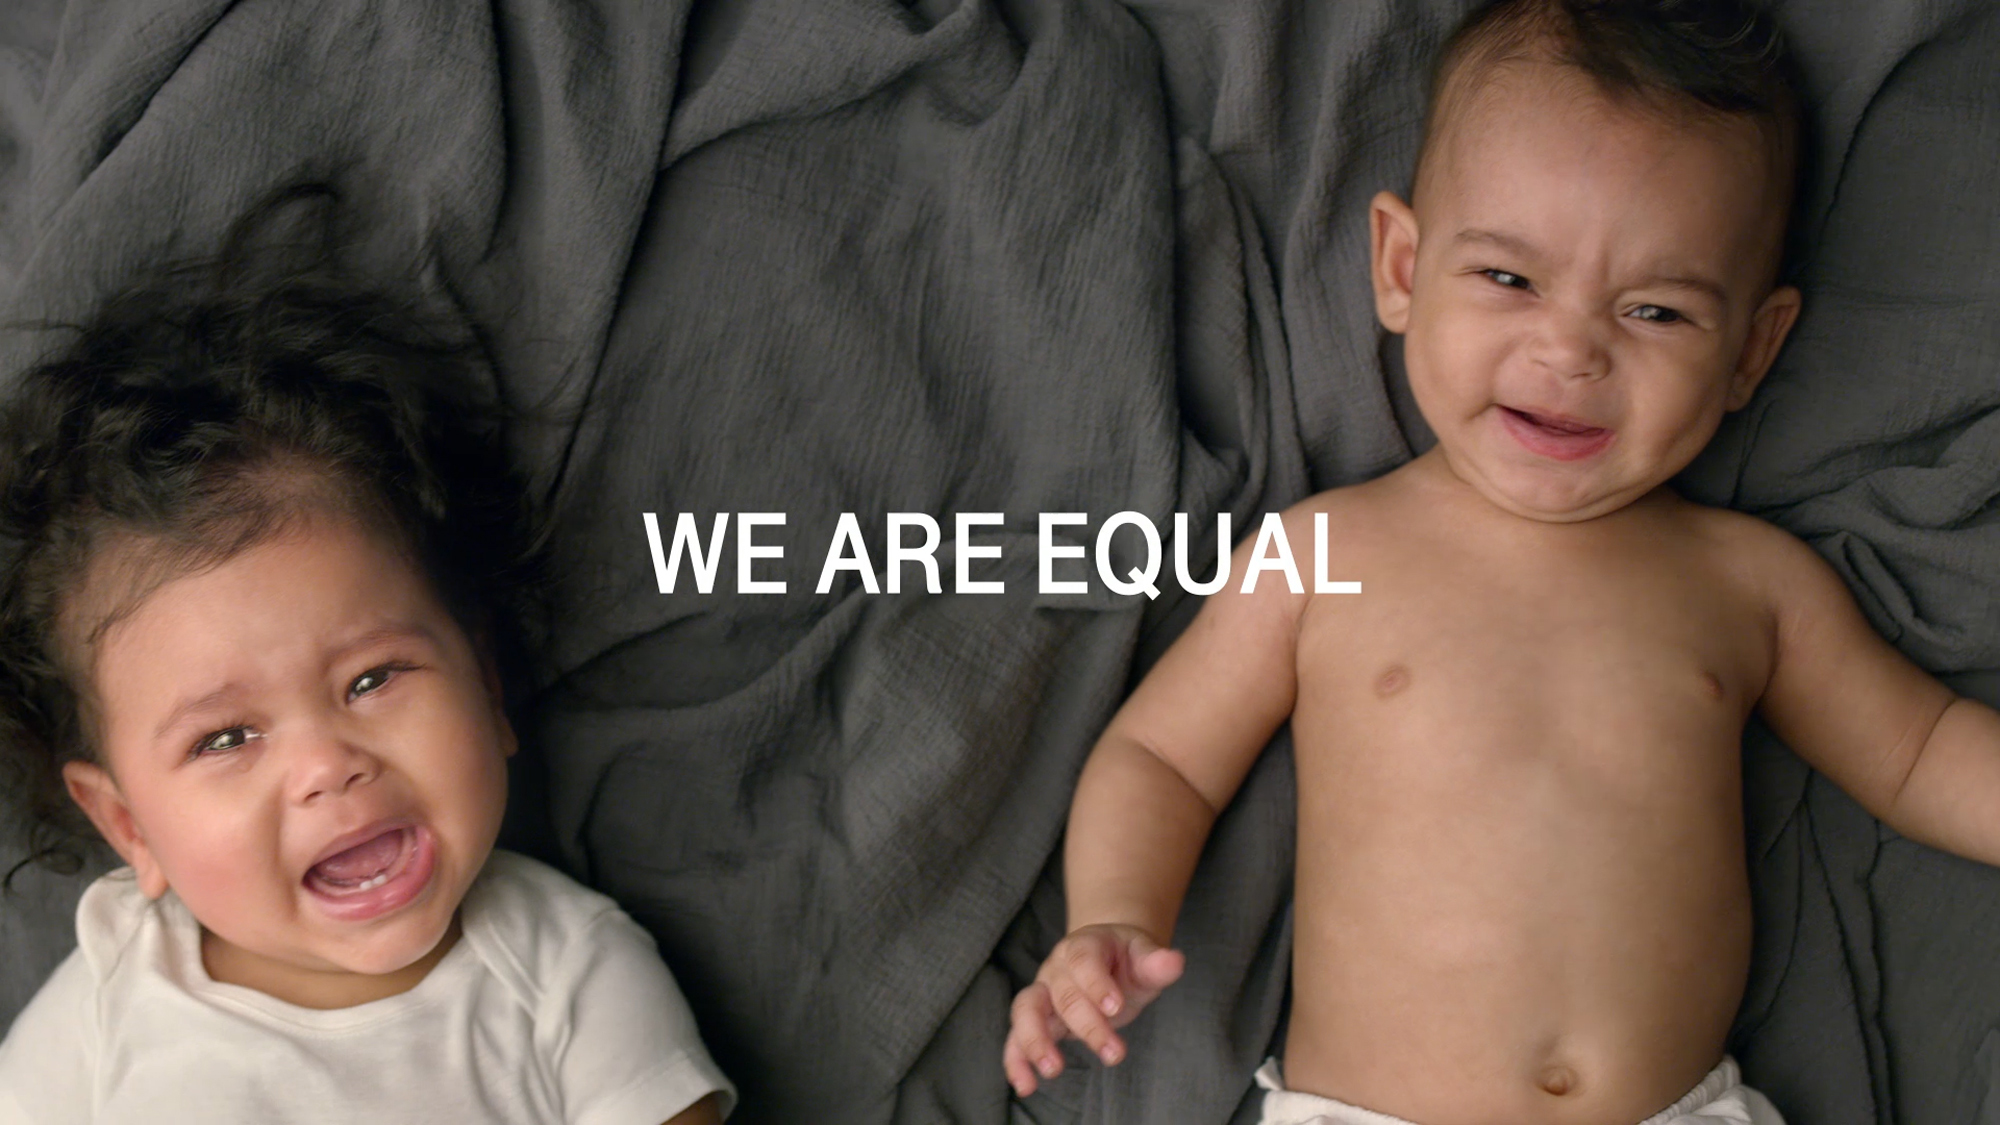 Super Bowl Airs T-Mobile 'Equal Pay' Ad, Rejects #PleaseStand Ad as Too Political